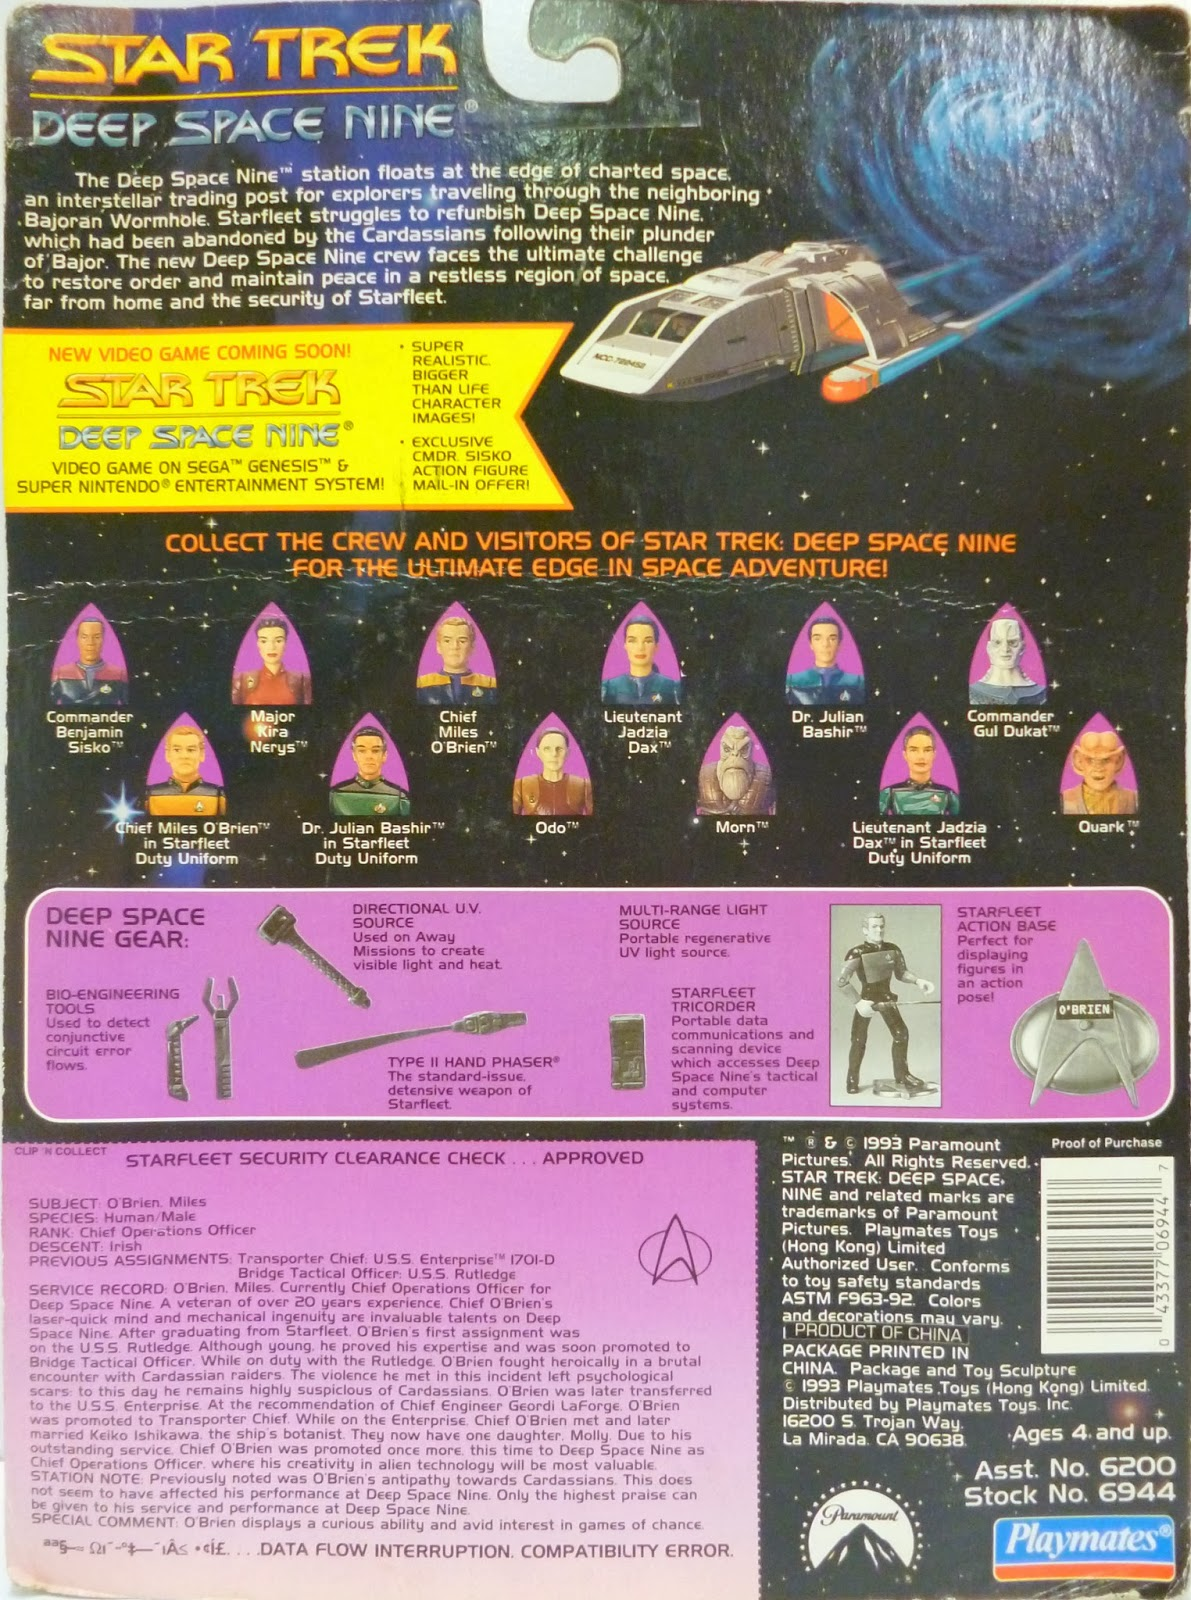 Star Trek Deep Space Nine Australian Exclusive